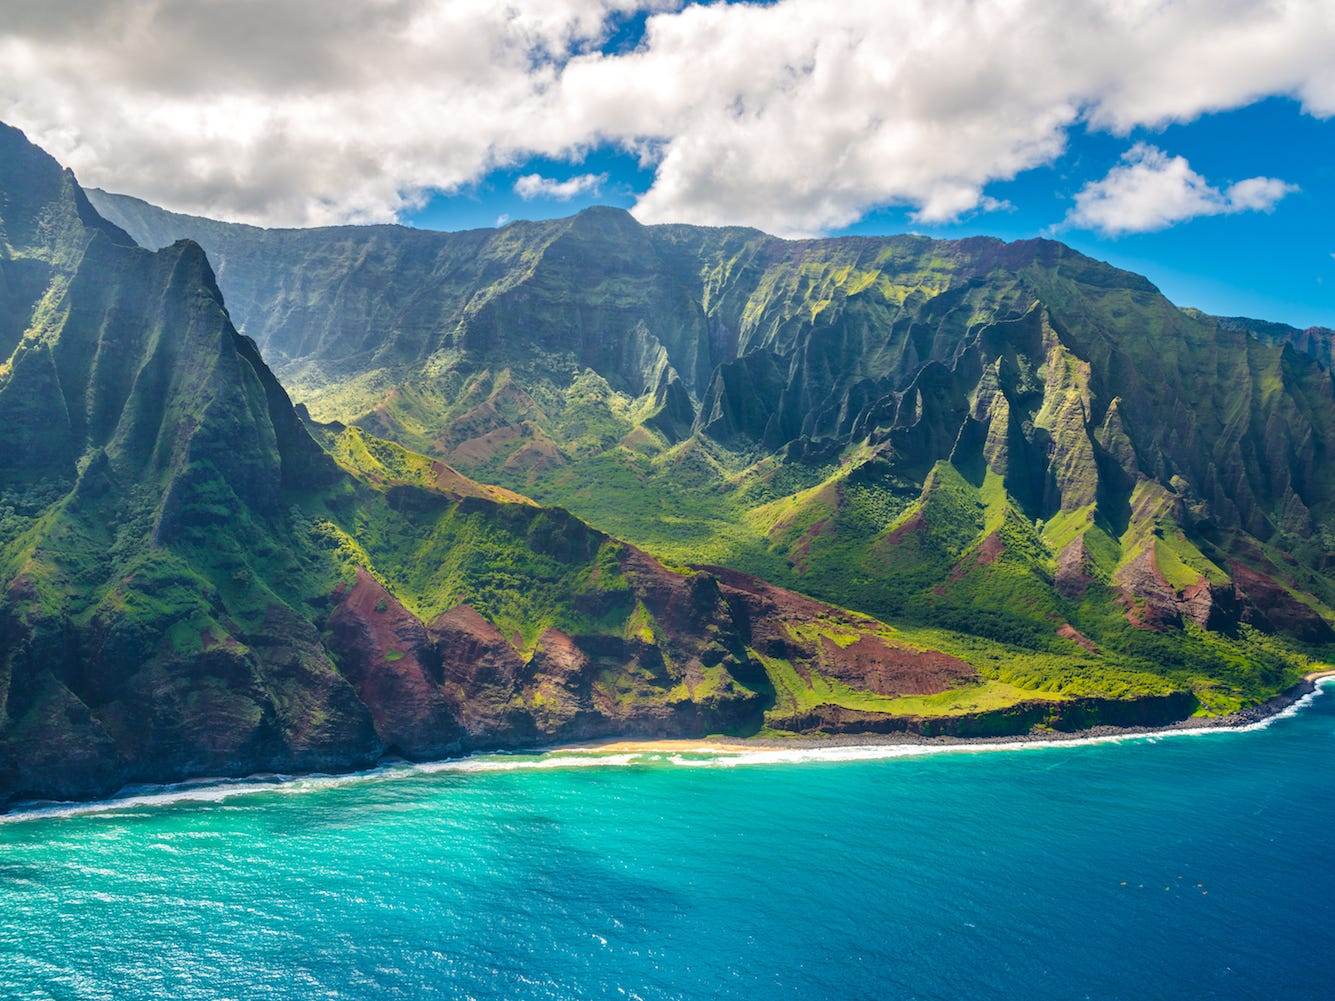 Slide 34 of 51: Between the colorful cliffs and the azure blue waters below, Hawaii's Na Pali Coast is sure to wow any visitor. Hiking the cliffs will afford you 4,000-foot-high views of the Pacific Ocean andKalalau Valley, as well as plenty of beautiful waterfalls along the way.